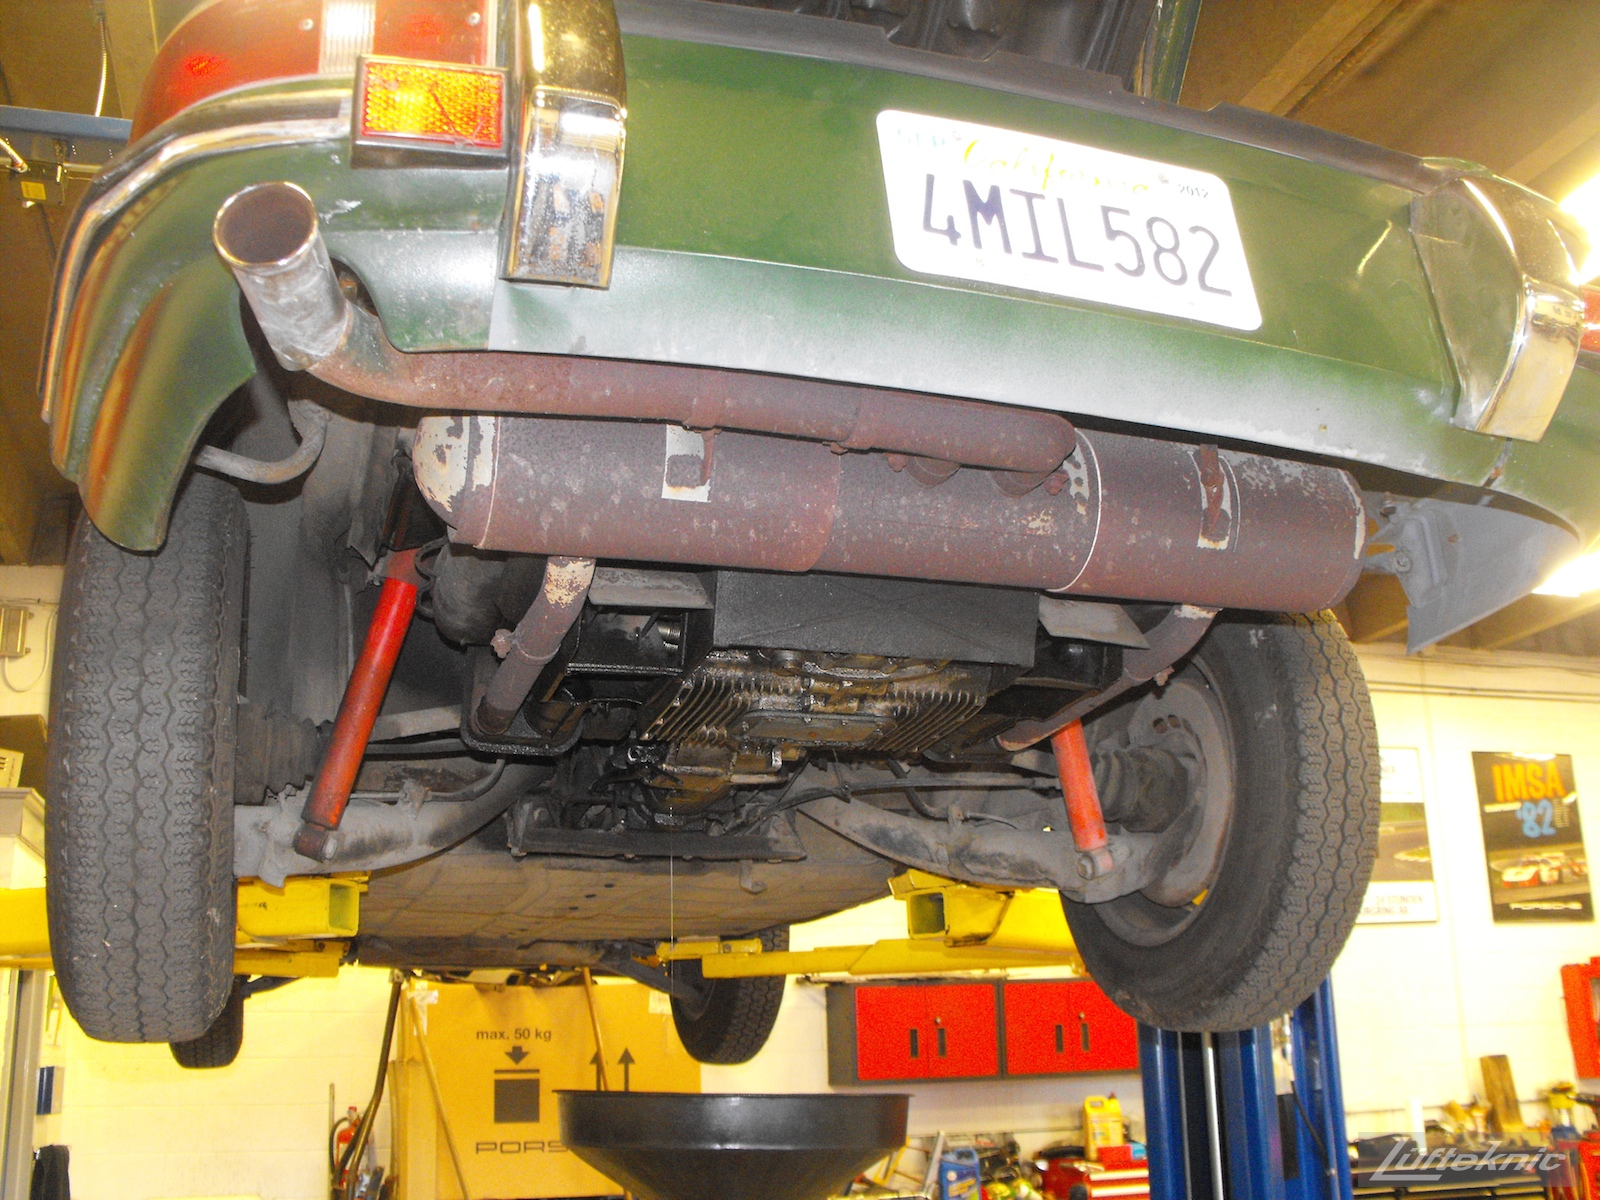 A rusty muffler exposed and oily bottom of the engine of an Irish Green Porsche 912 undergoing restoration at Lufteknic.